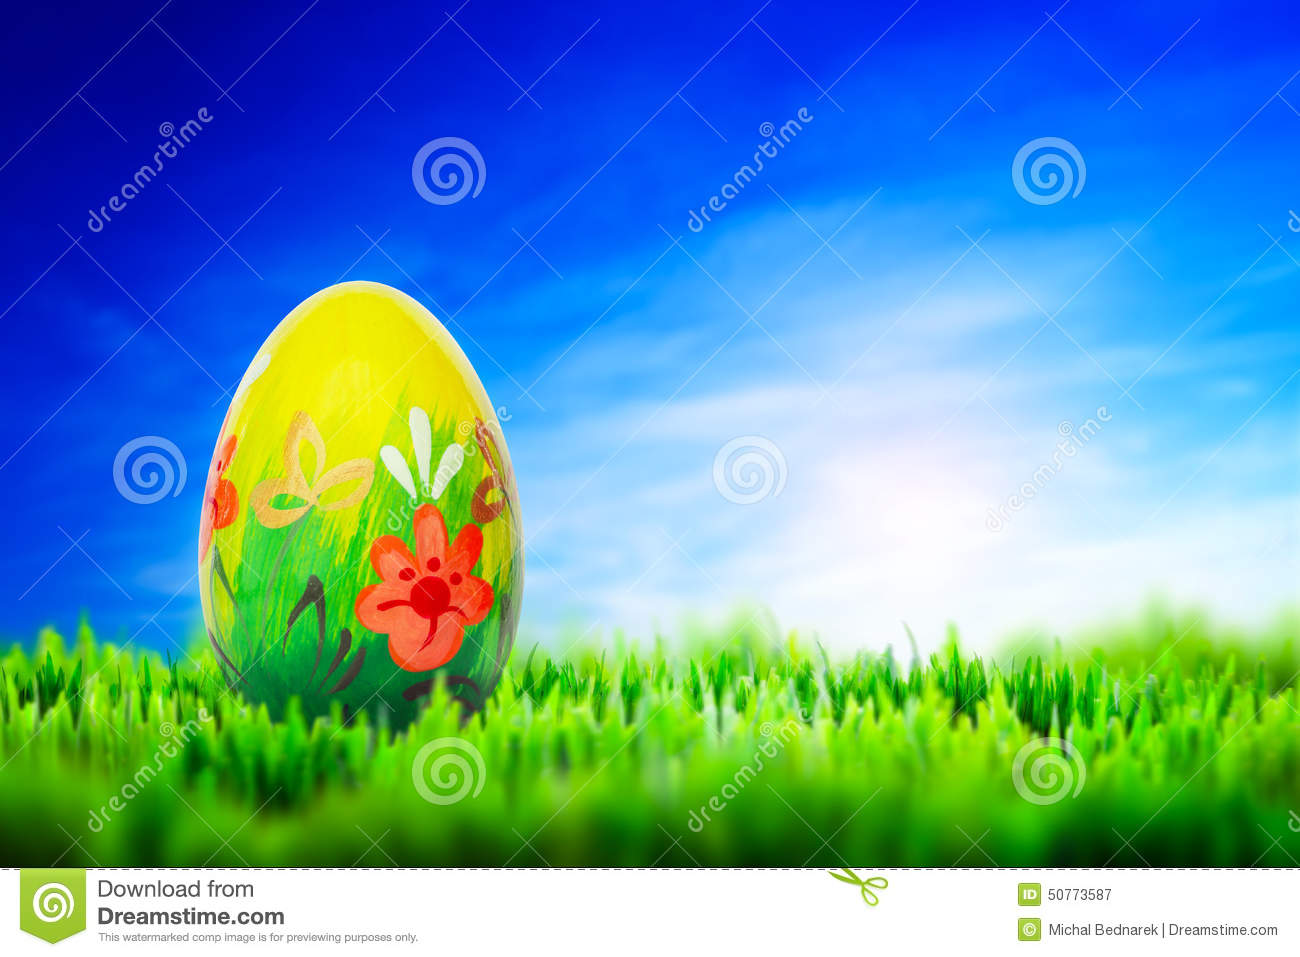 Hand painted Easter egg on grass. Spring pattern